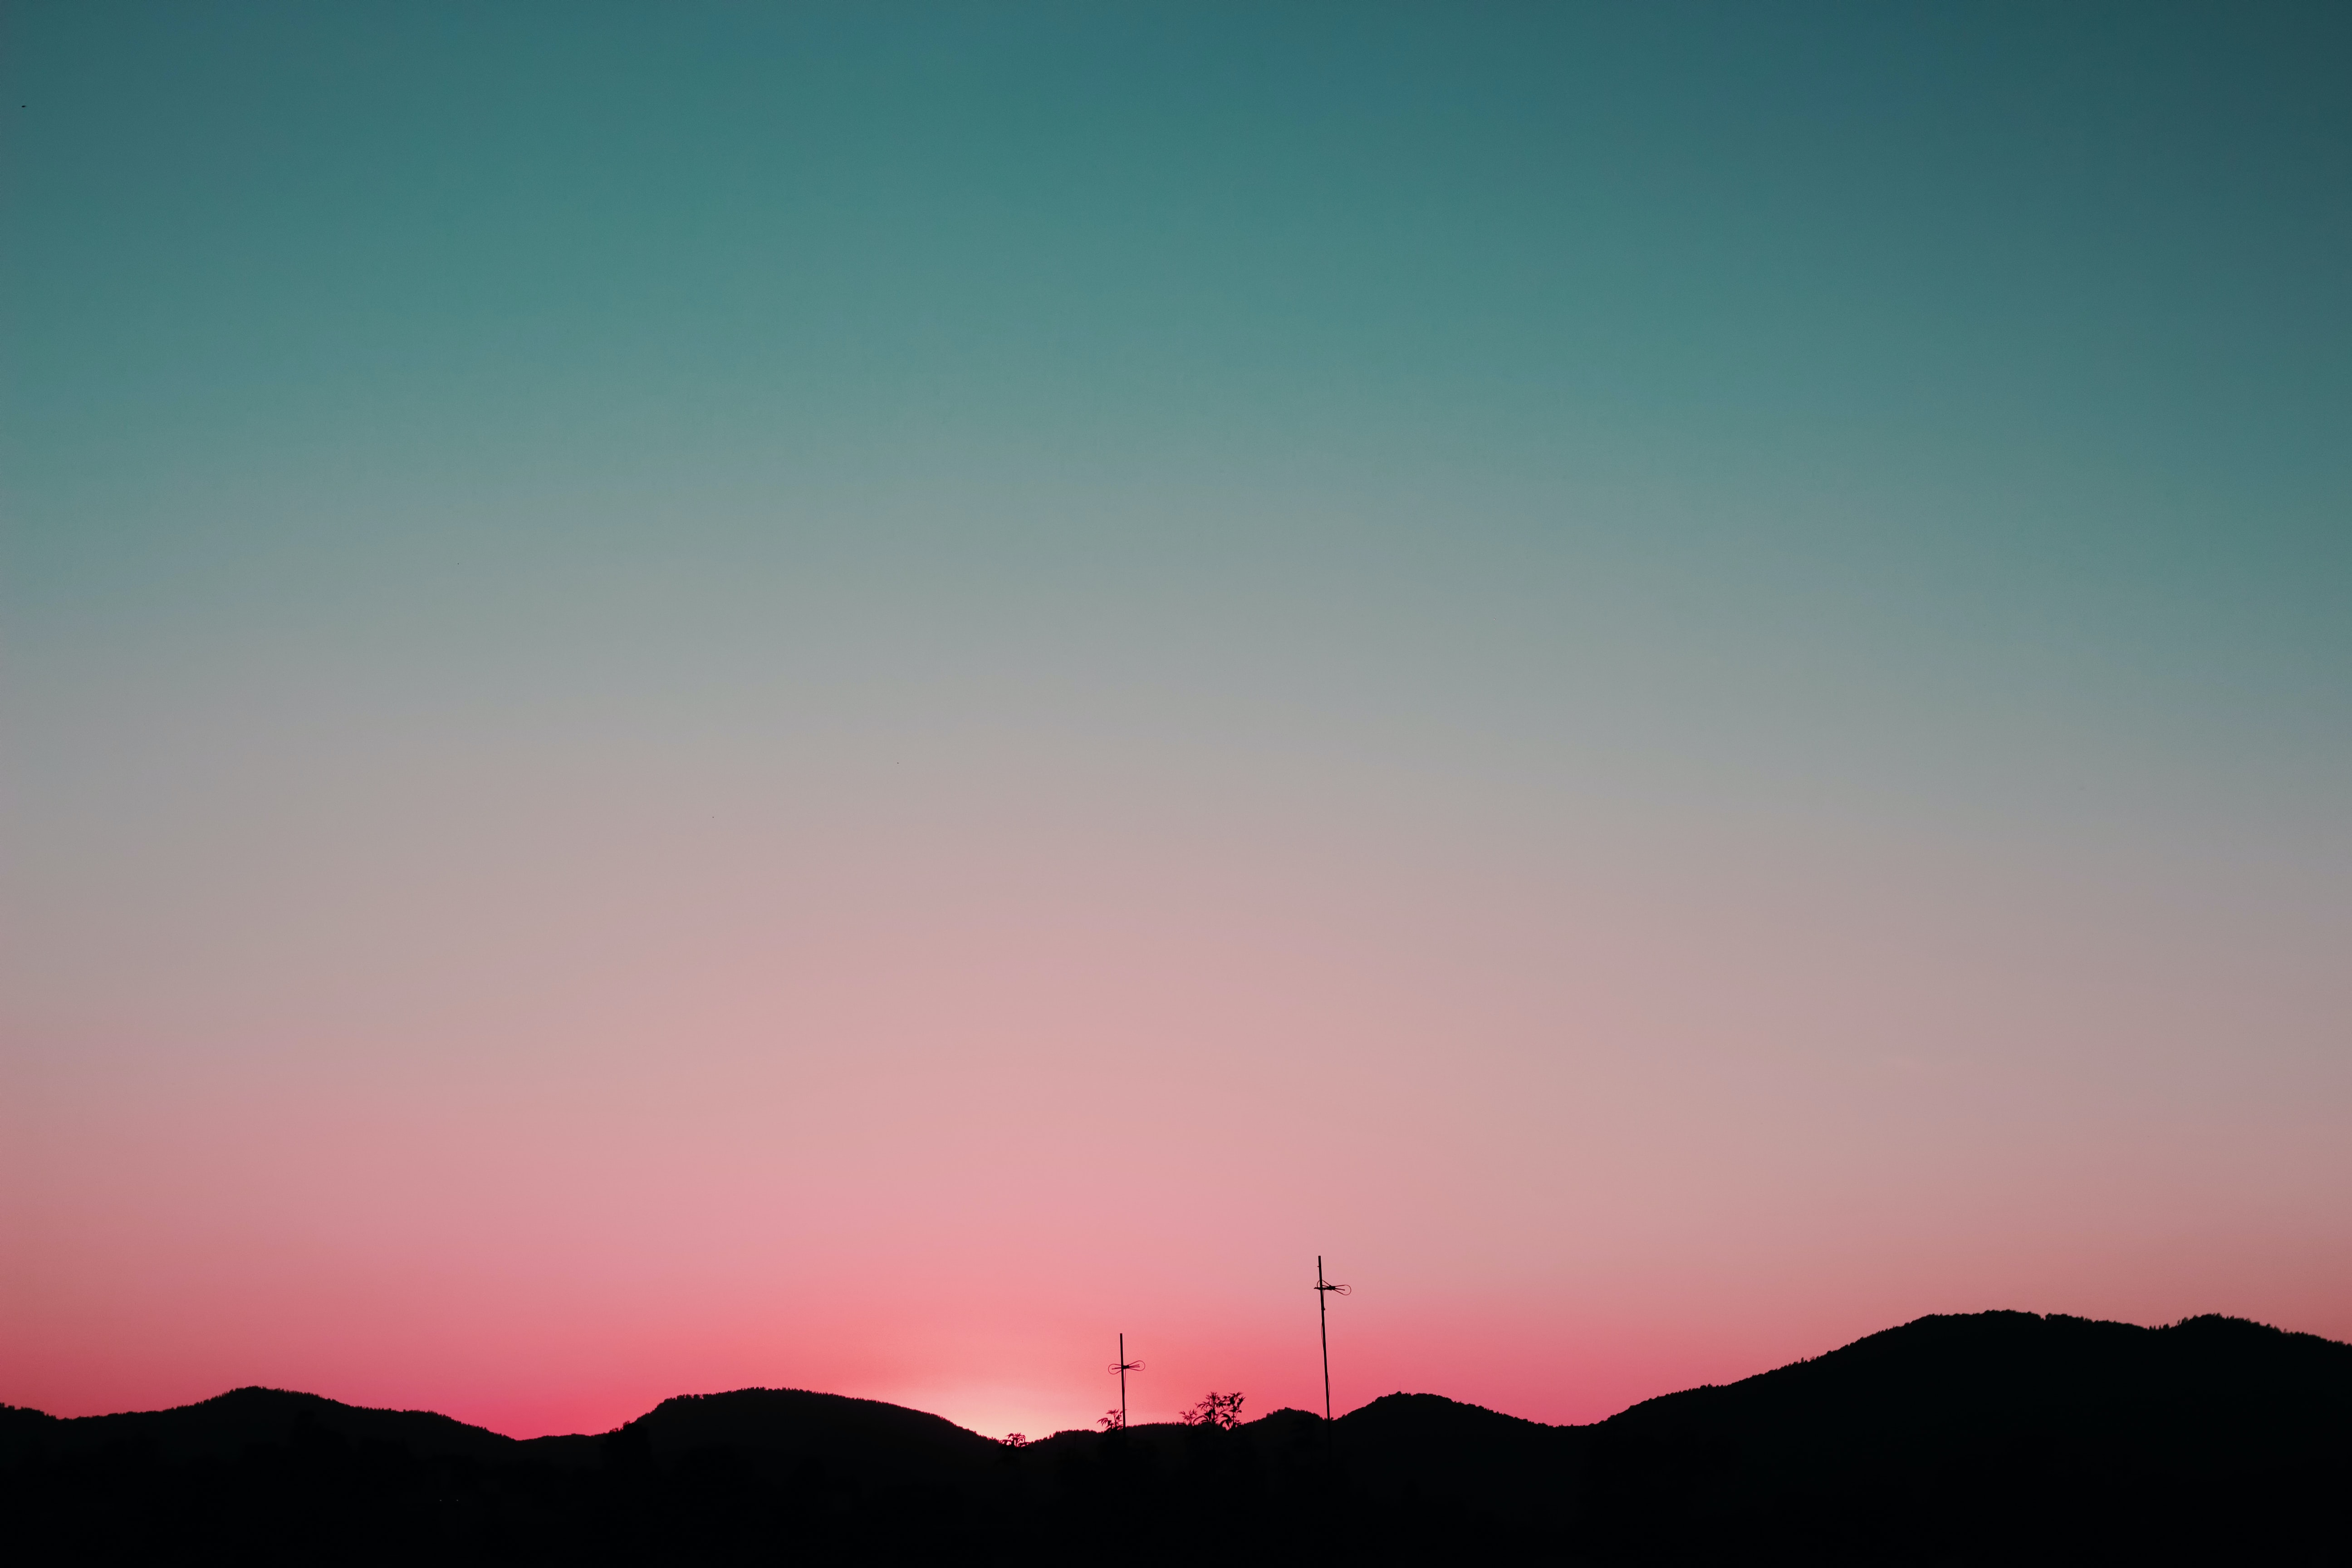 silhouette of mountains under pink and blue sky